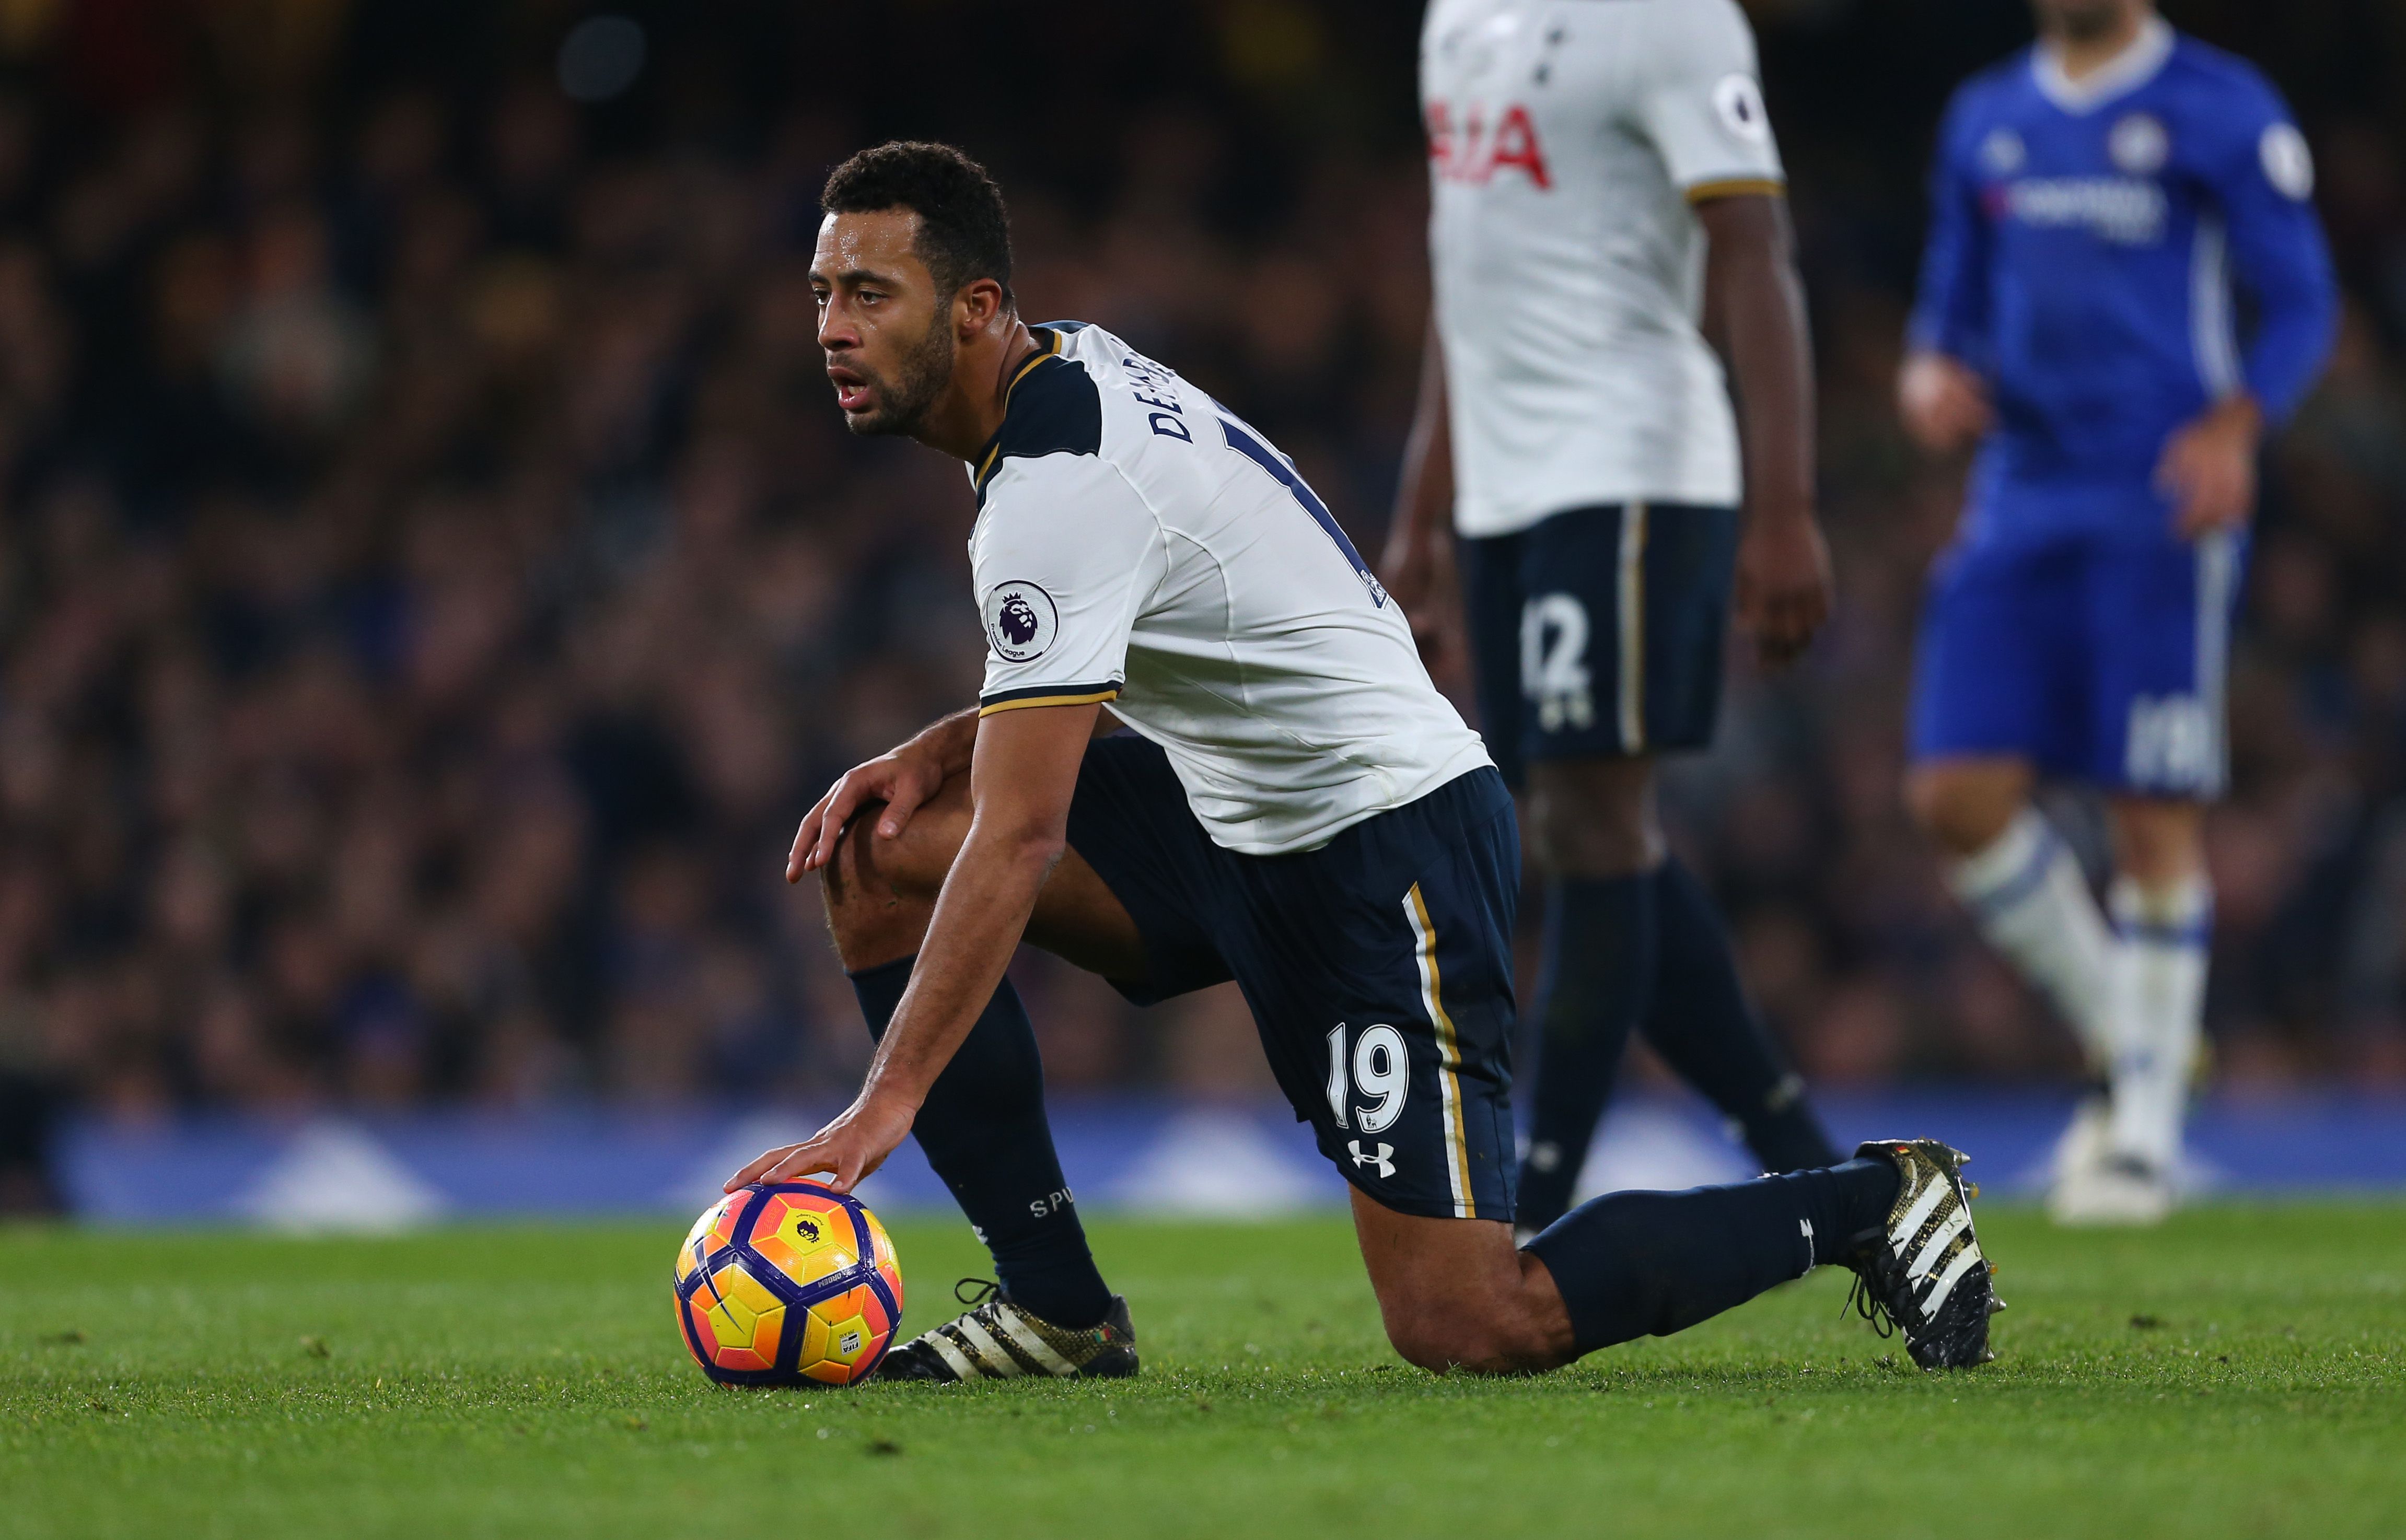 Spurs squad is stronger than Chelsea's, claims Redknapp